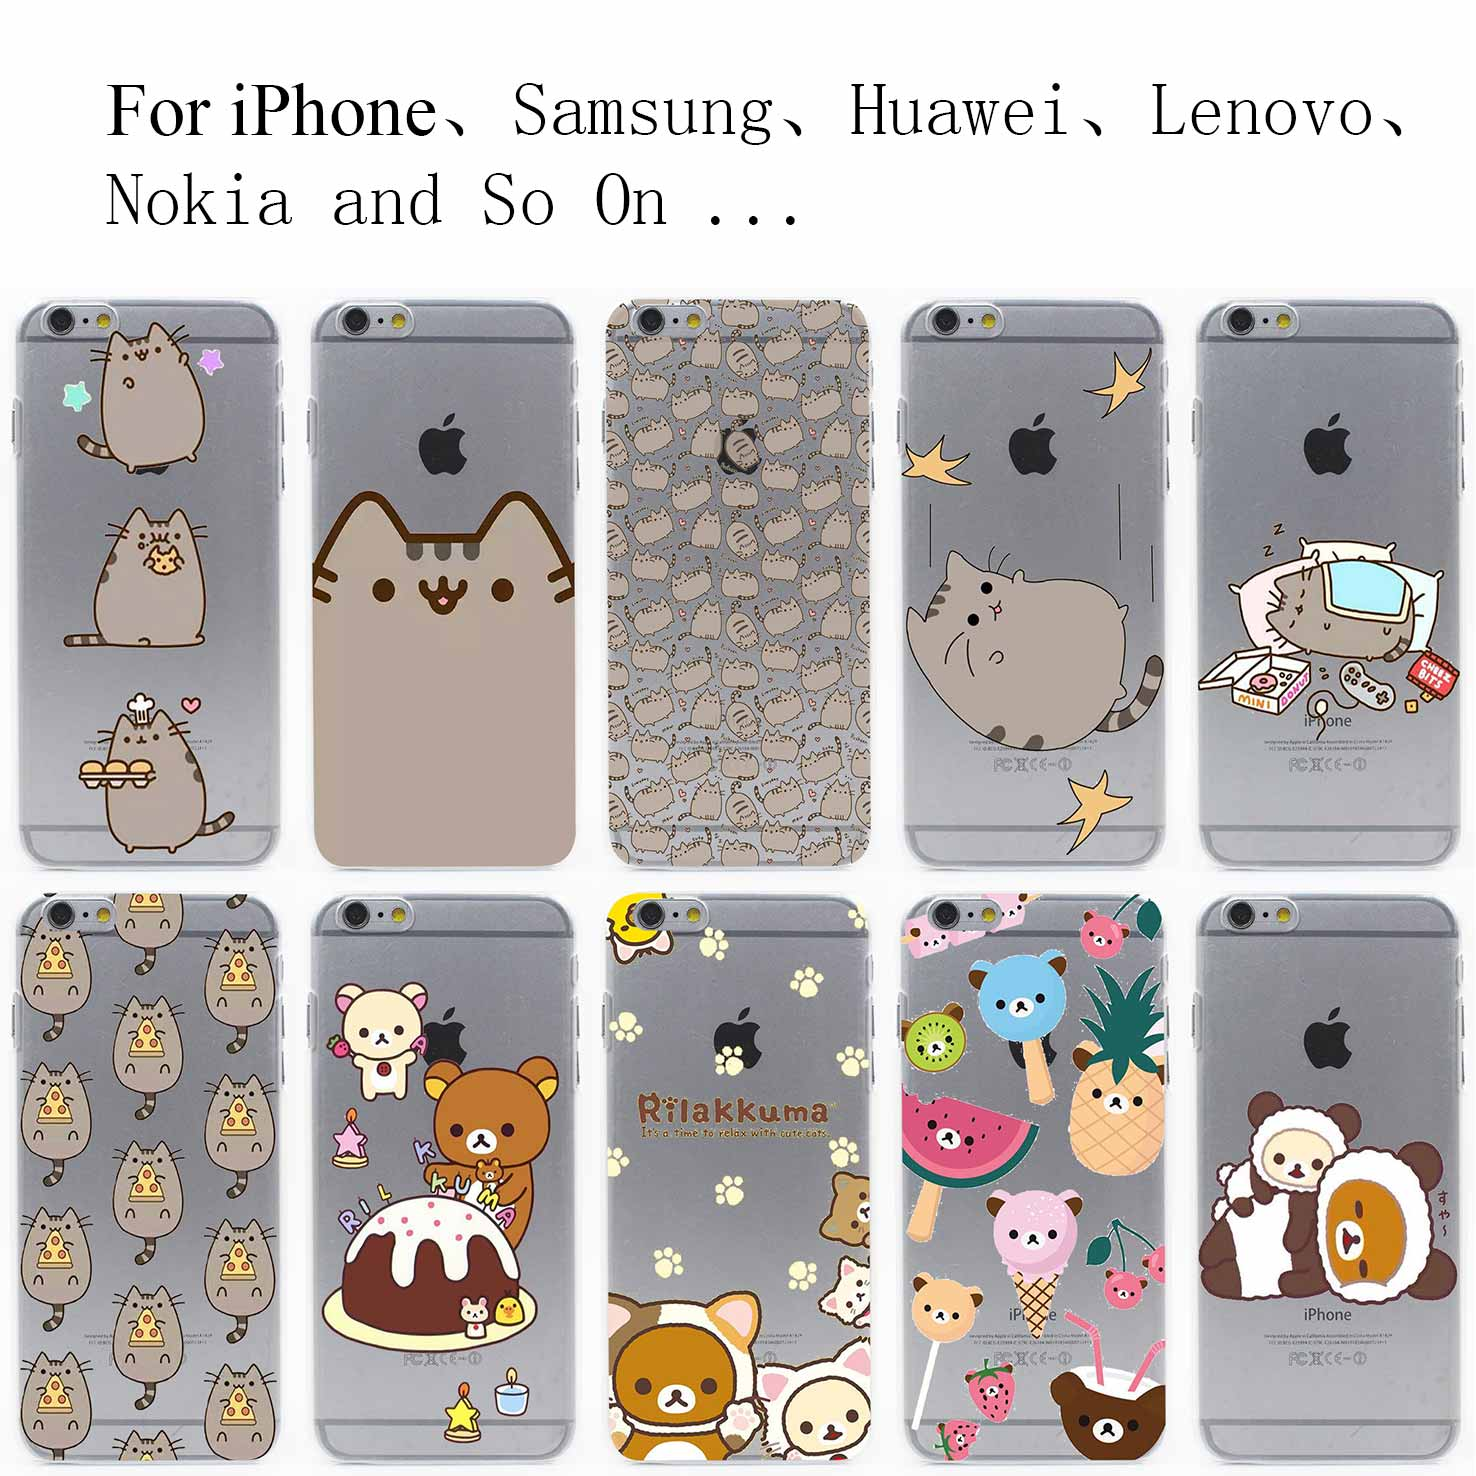 iPhone silicone phone cases for iphone 5 : ... out transparent case cover for iphone 4 4s 5 5s se 6 6s plus rated 5